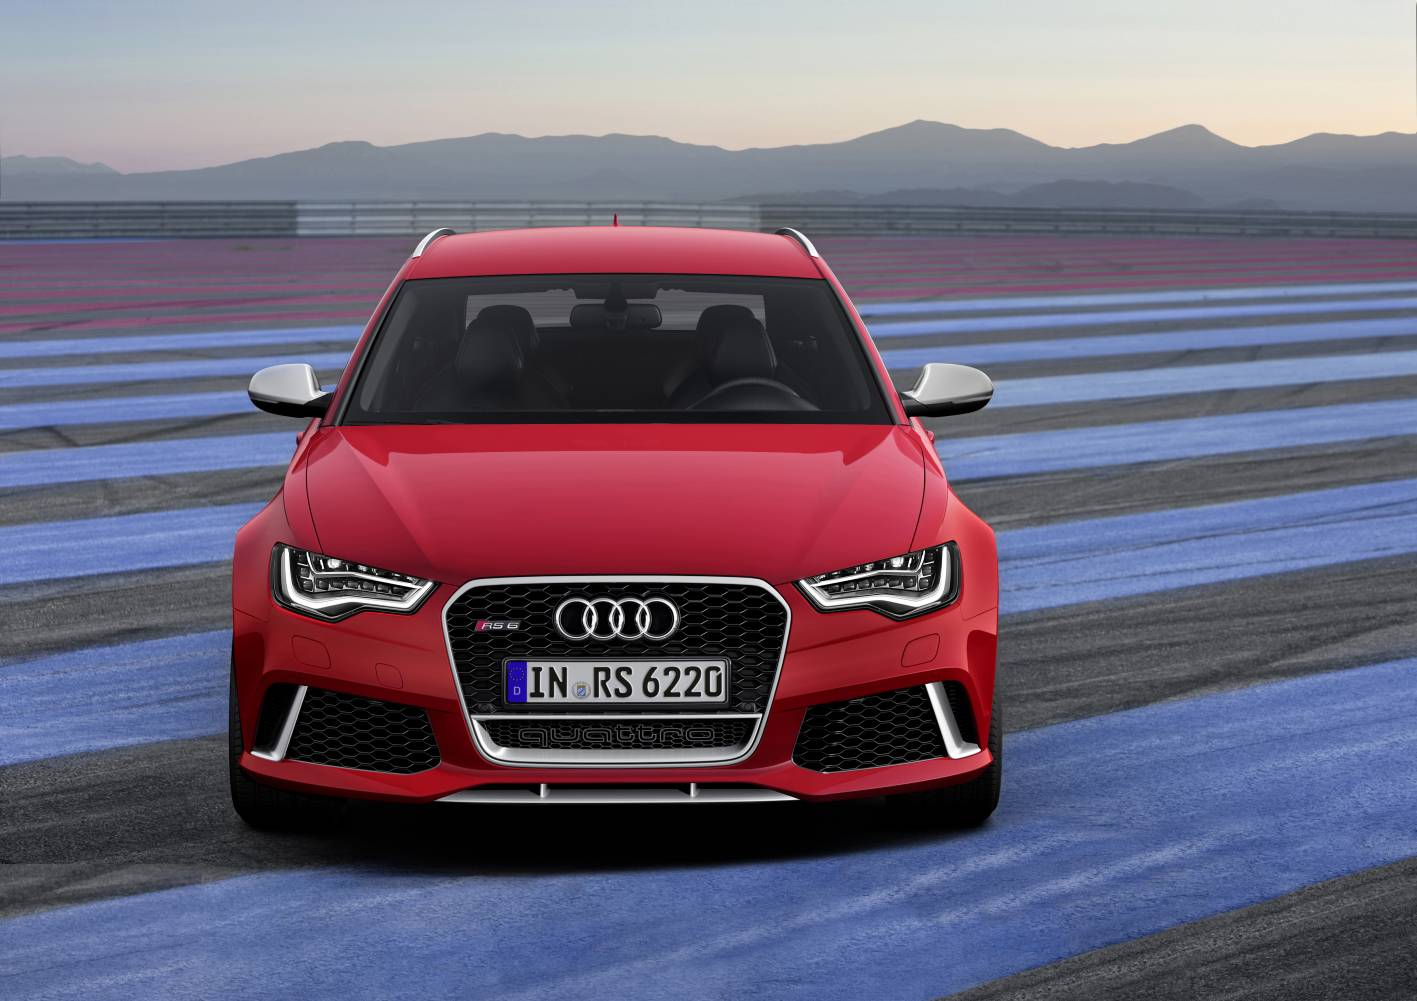 2013 audi rs6 avant unveiled 0 100km h in. Black Bedroom Furniture Sets. Home Design Ideas